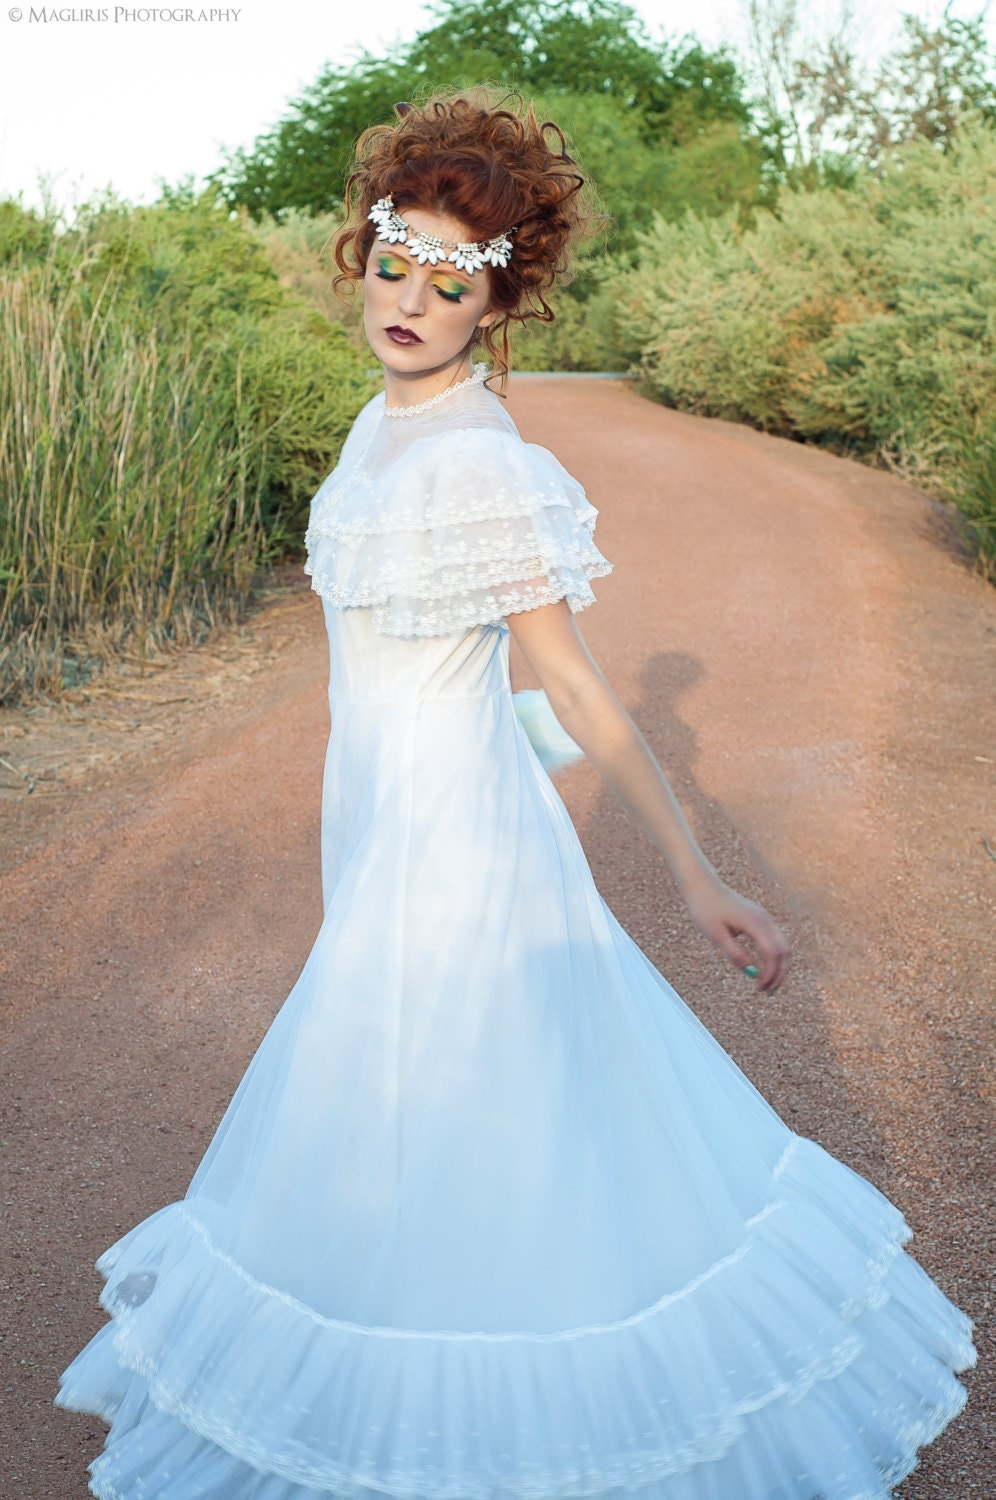 Southern Belle Tulle And Ruffles Vintage Wedding Dress